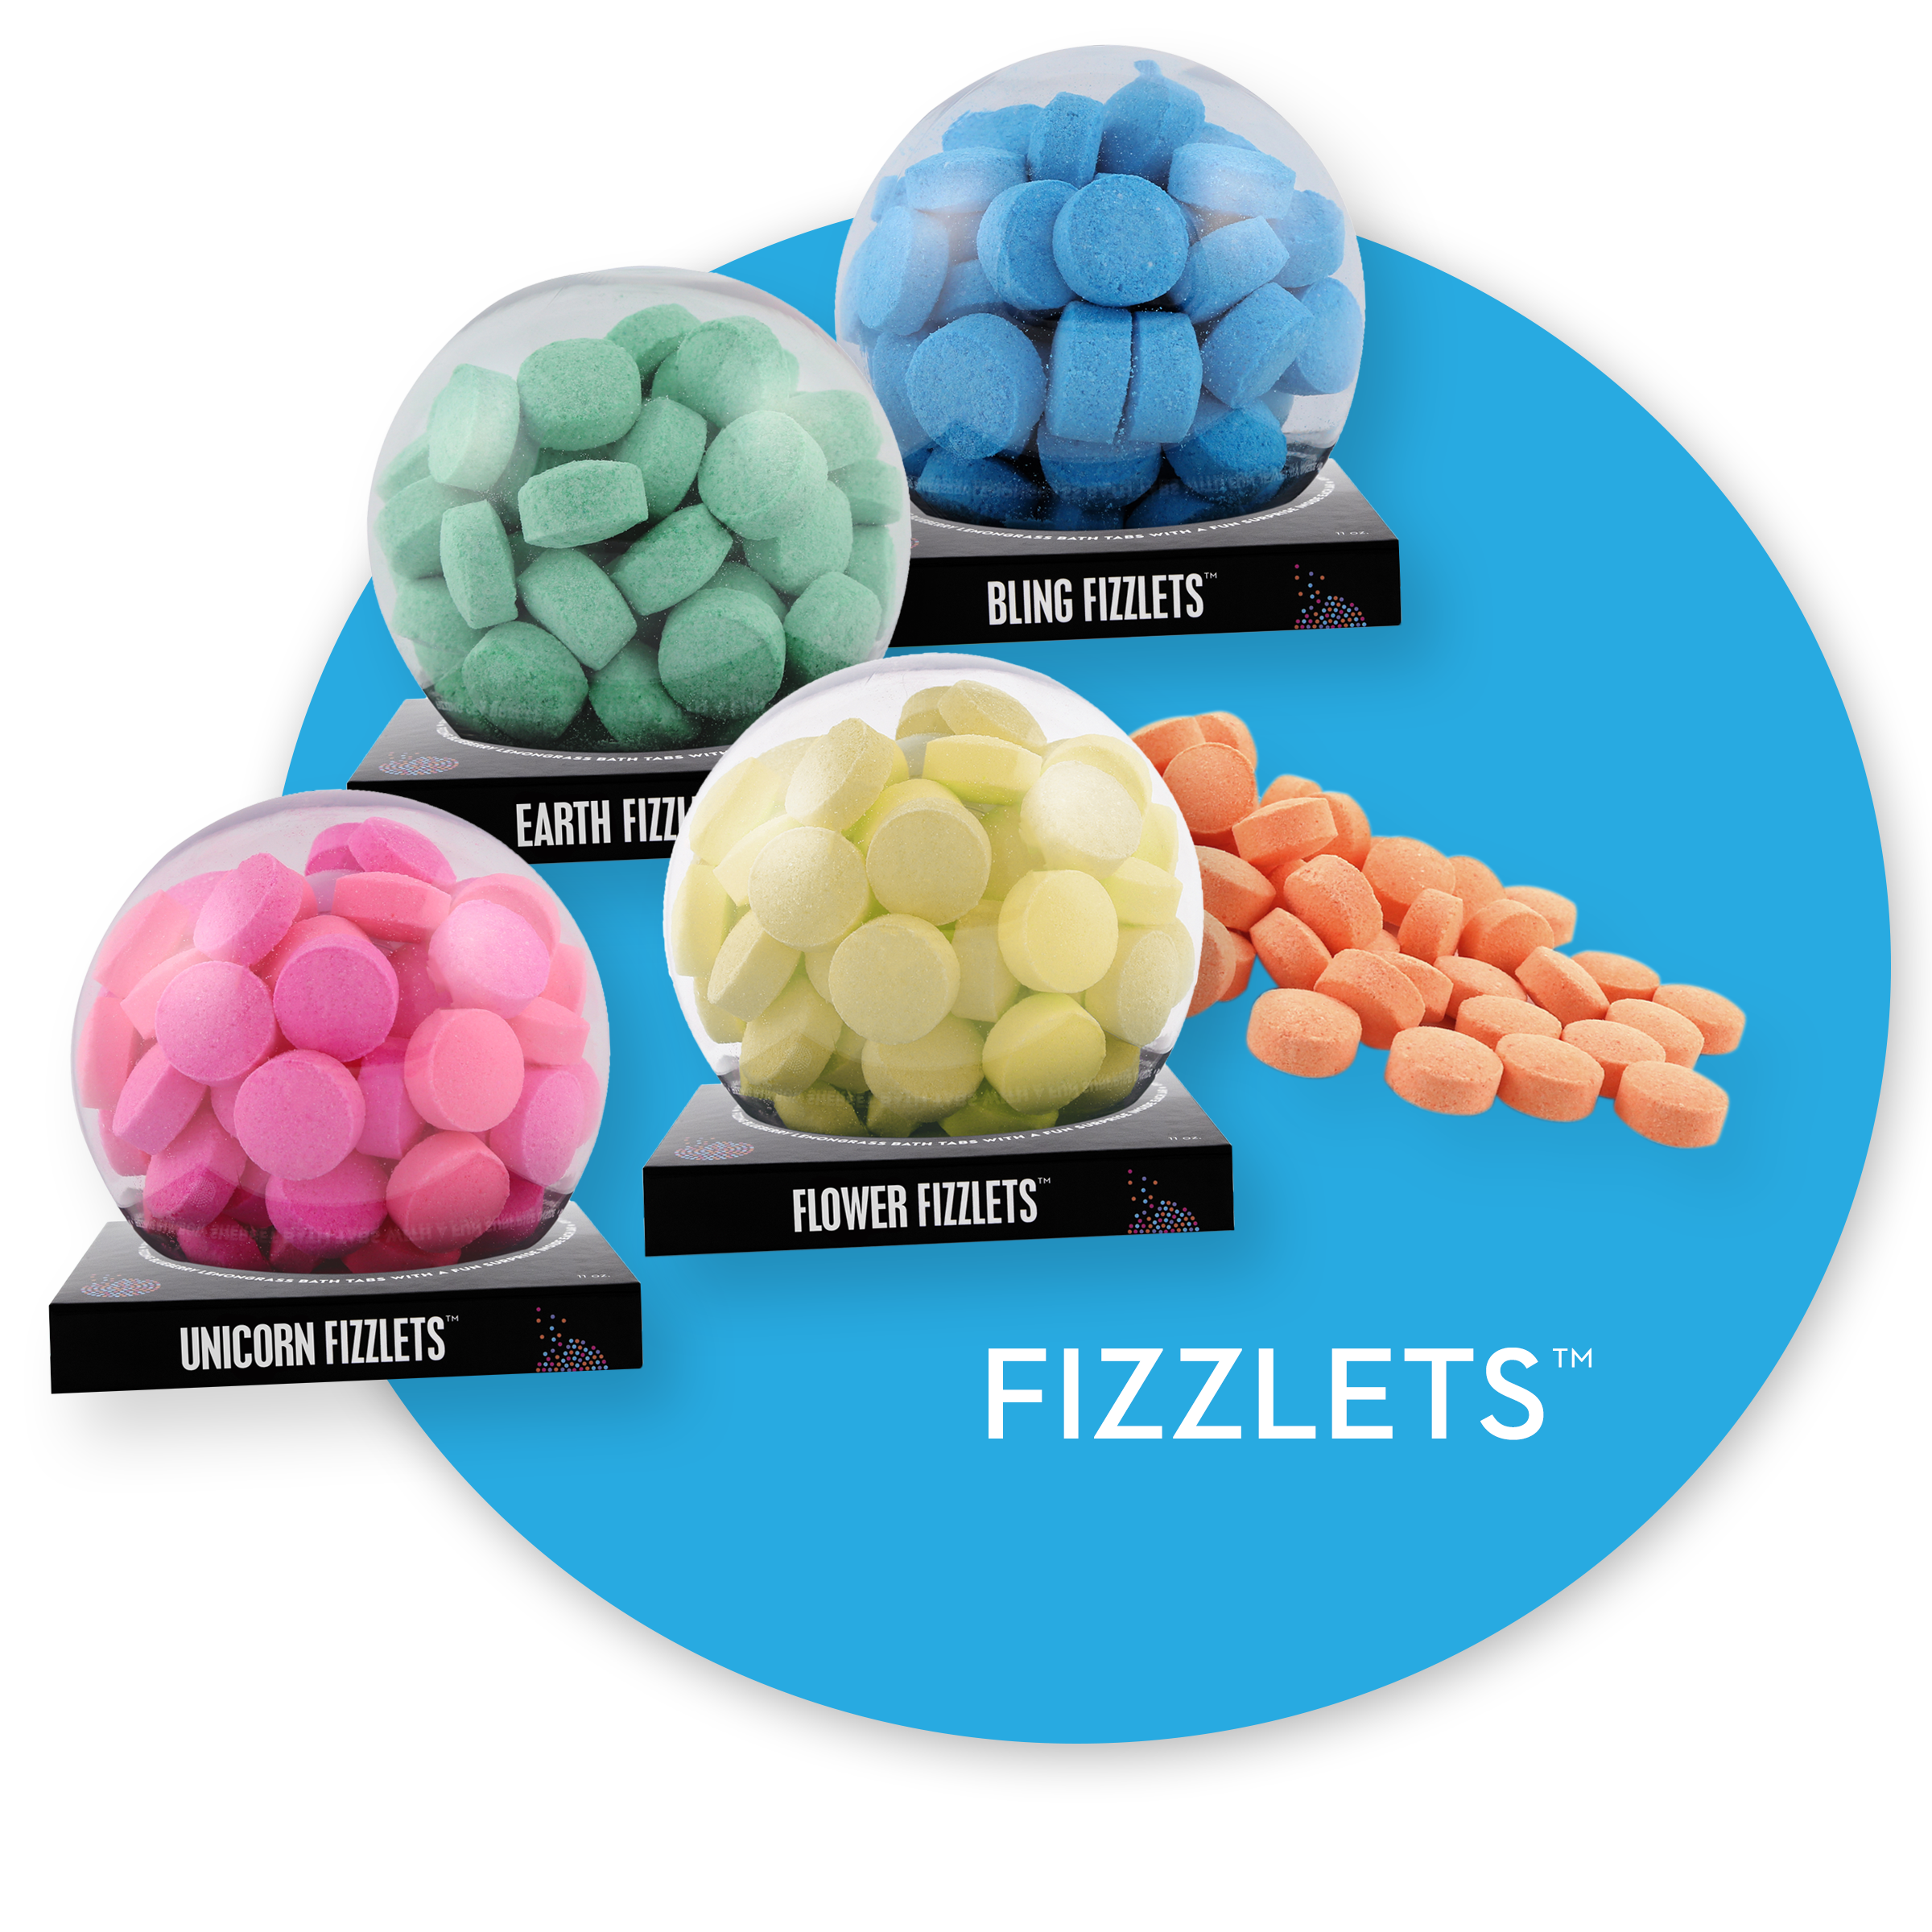 Packaged and unpackaged Fizzlets. Links to Fizzlets page.